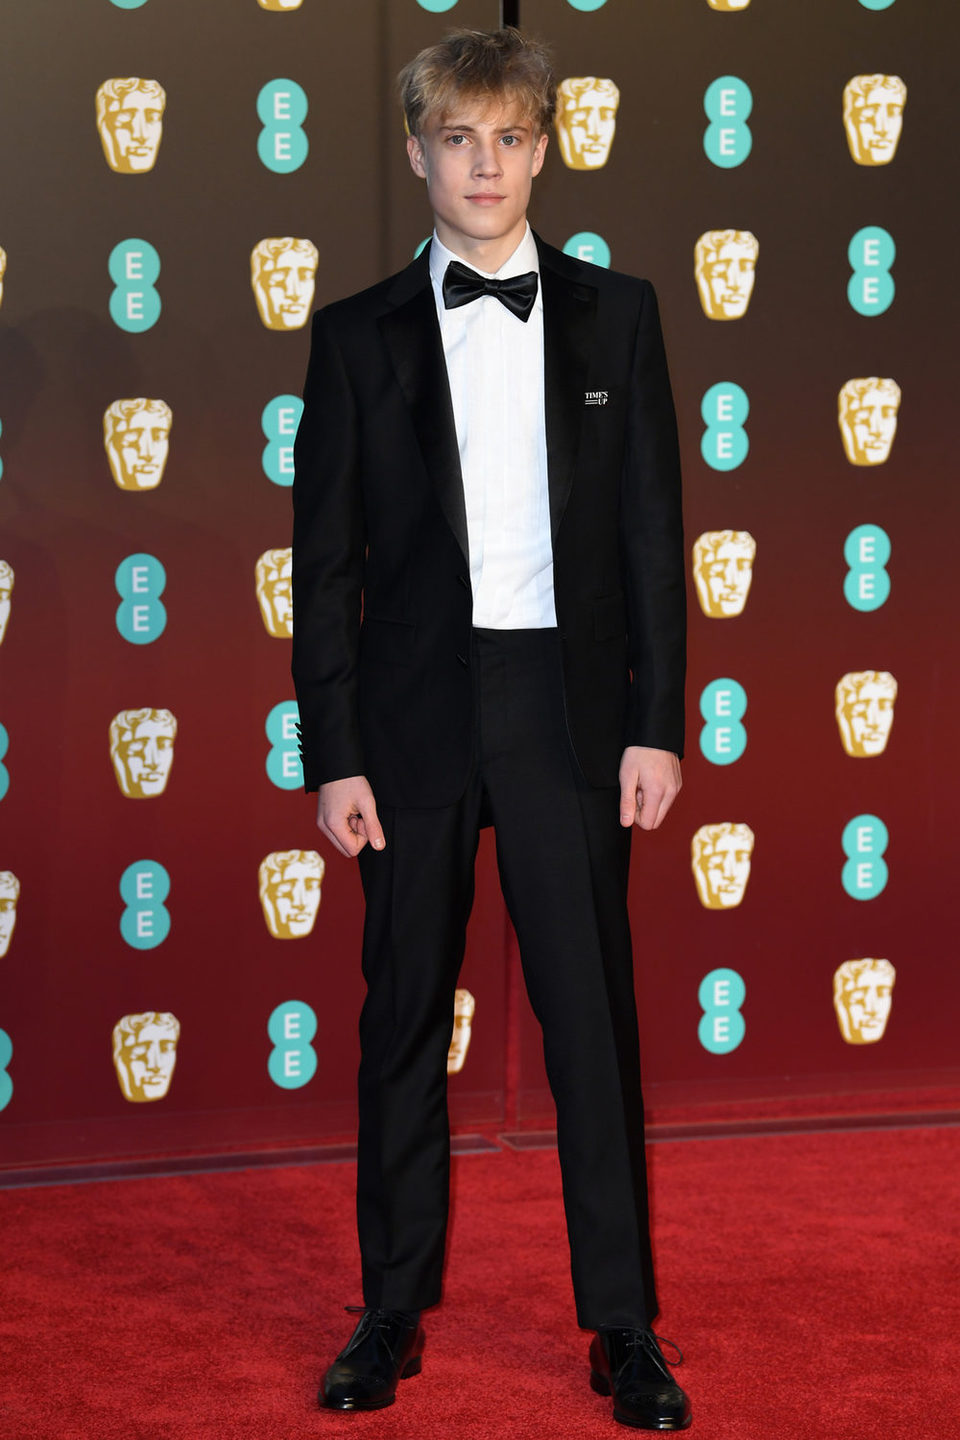 Www Tom Taylor De Tom Taylor At The Bafta S 2018 Red Carpet Photos At Movie N Co